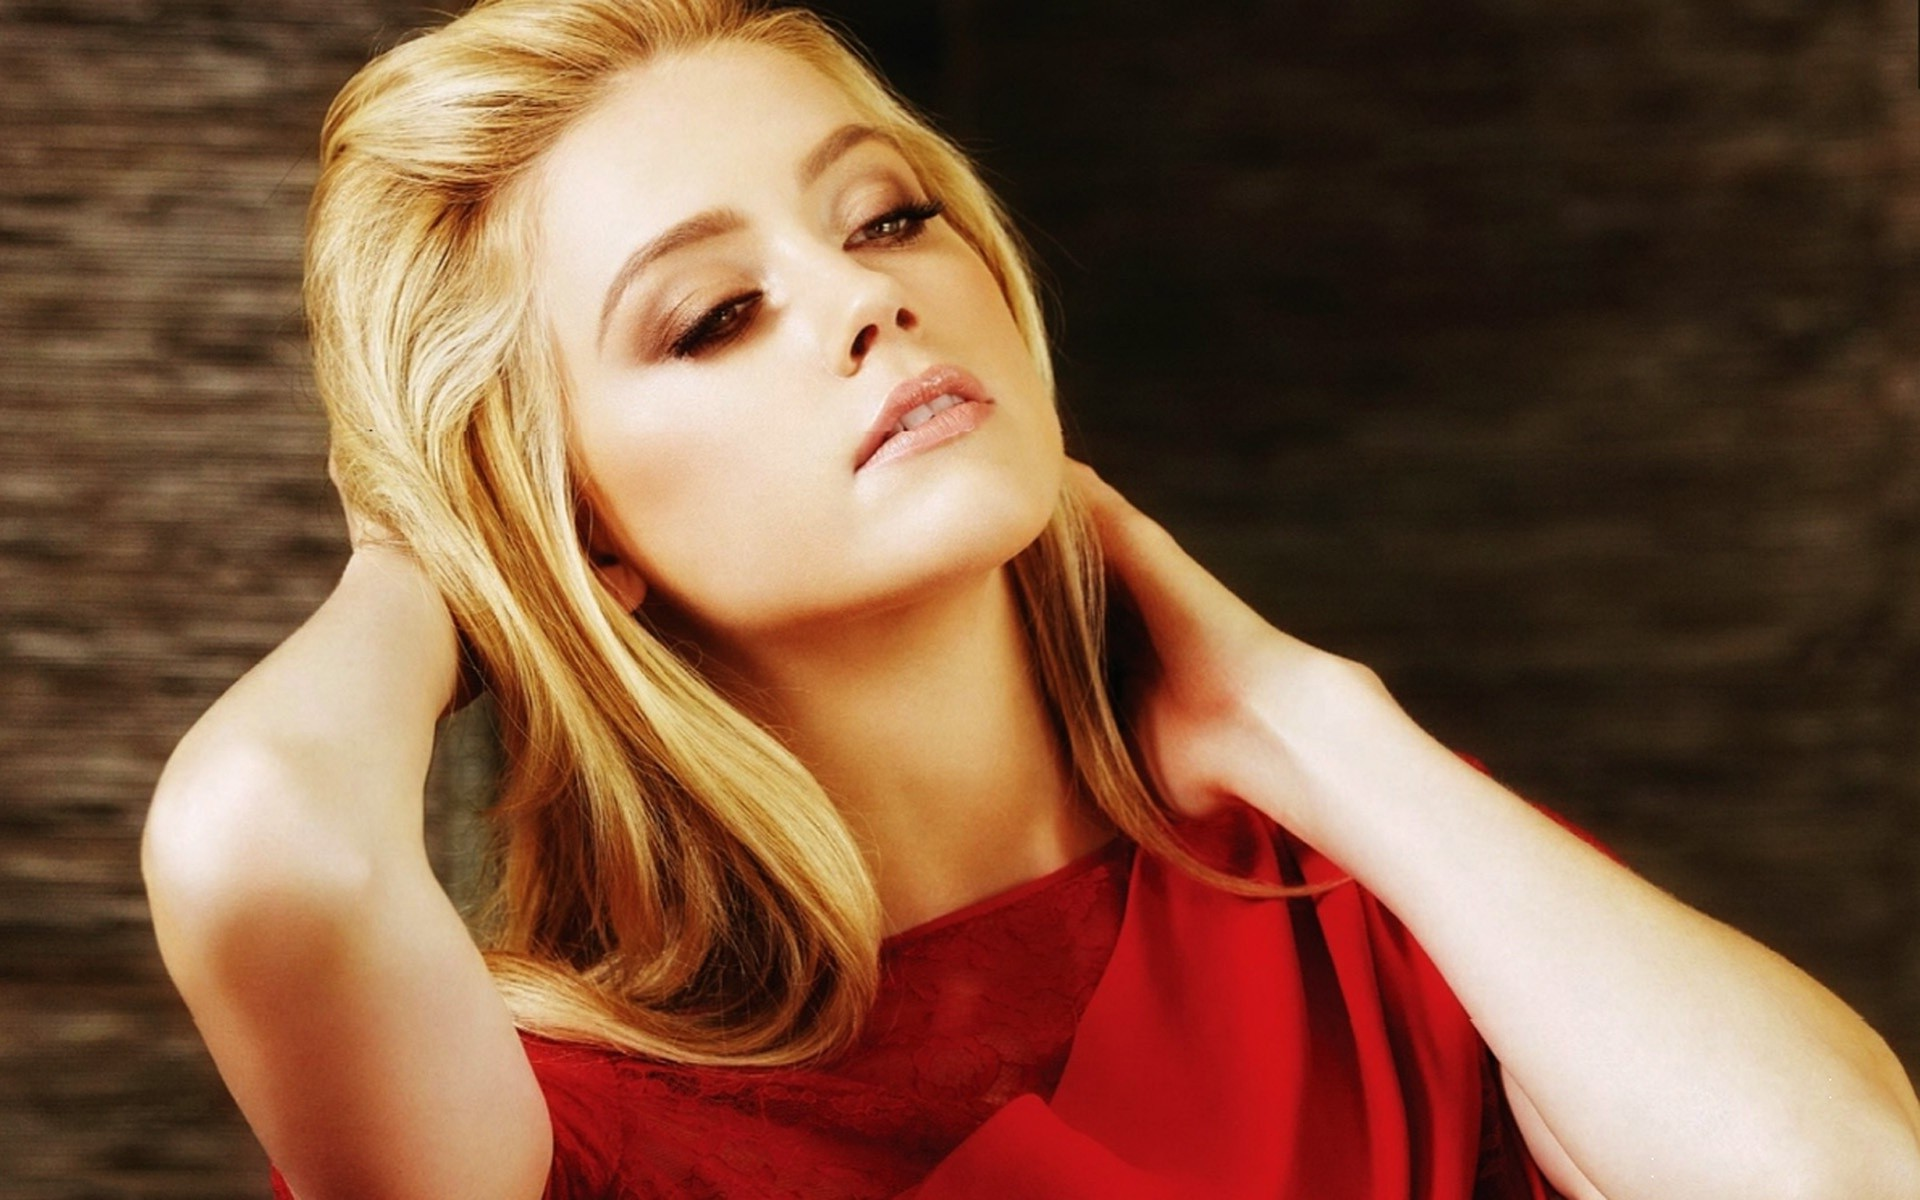 Amber Heard Hd: Amber Heard Wallpapers, Pictures, Images